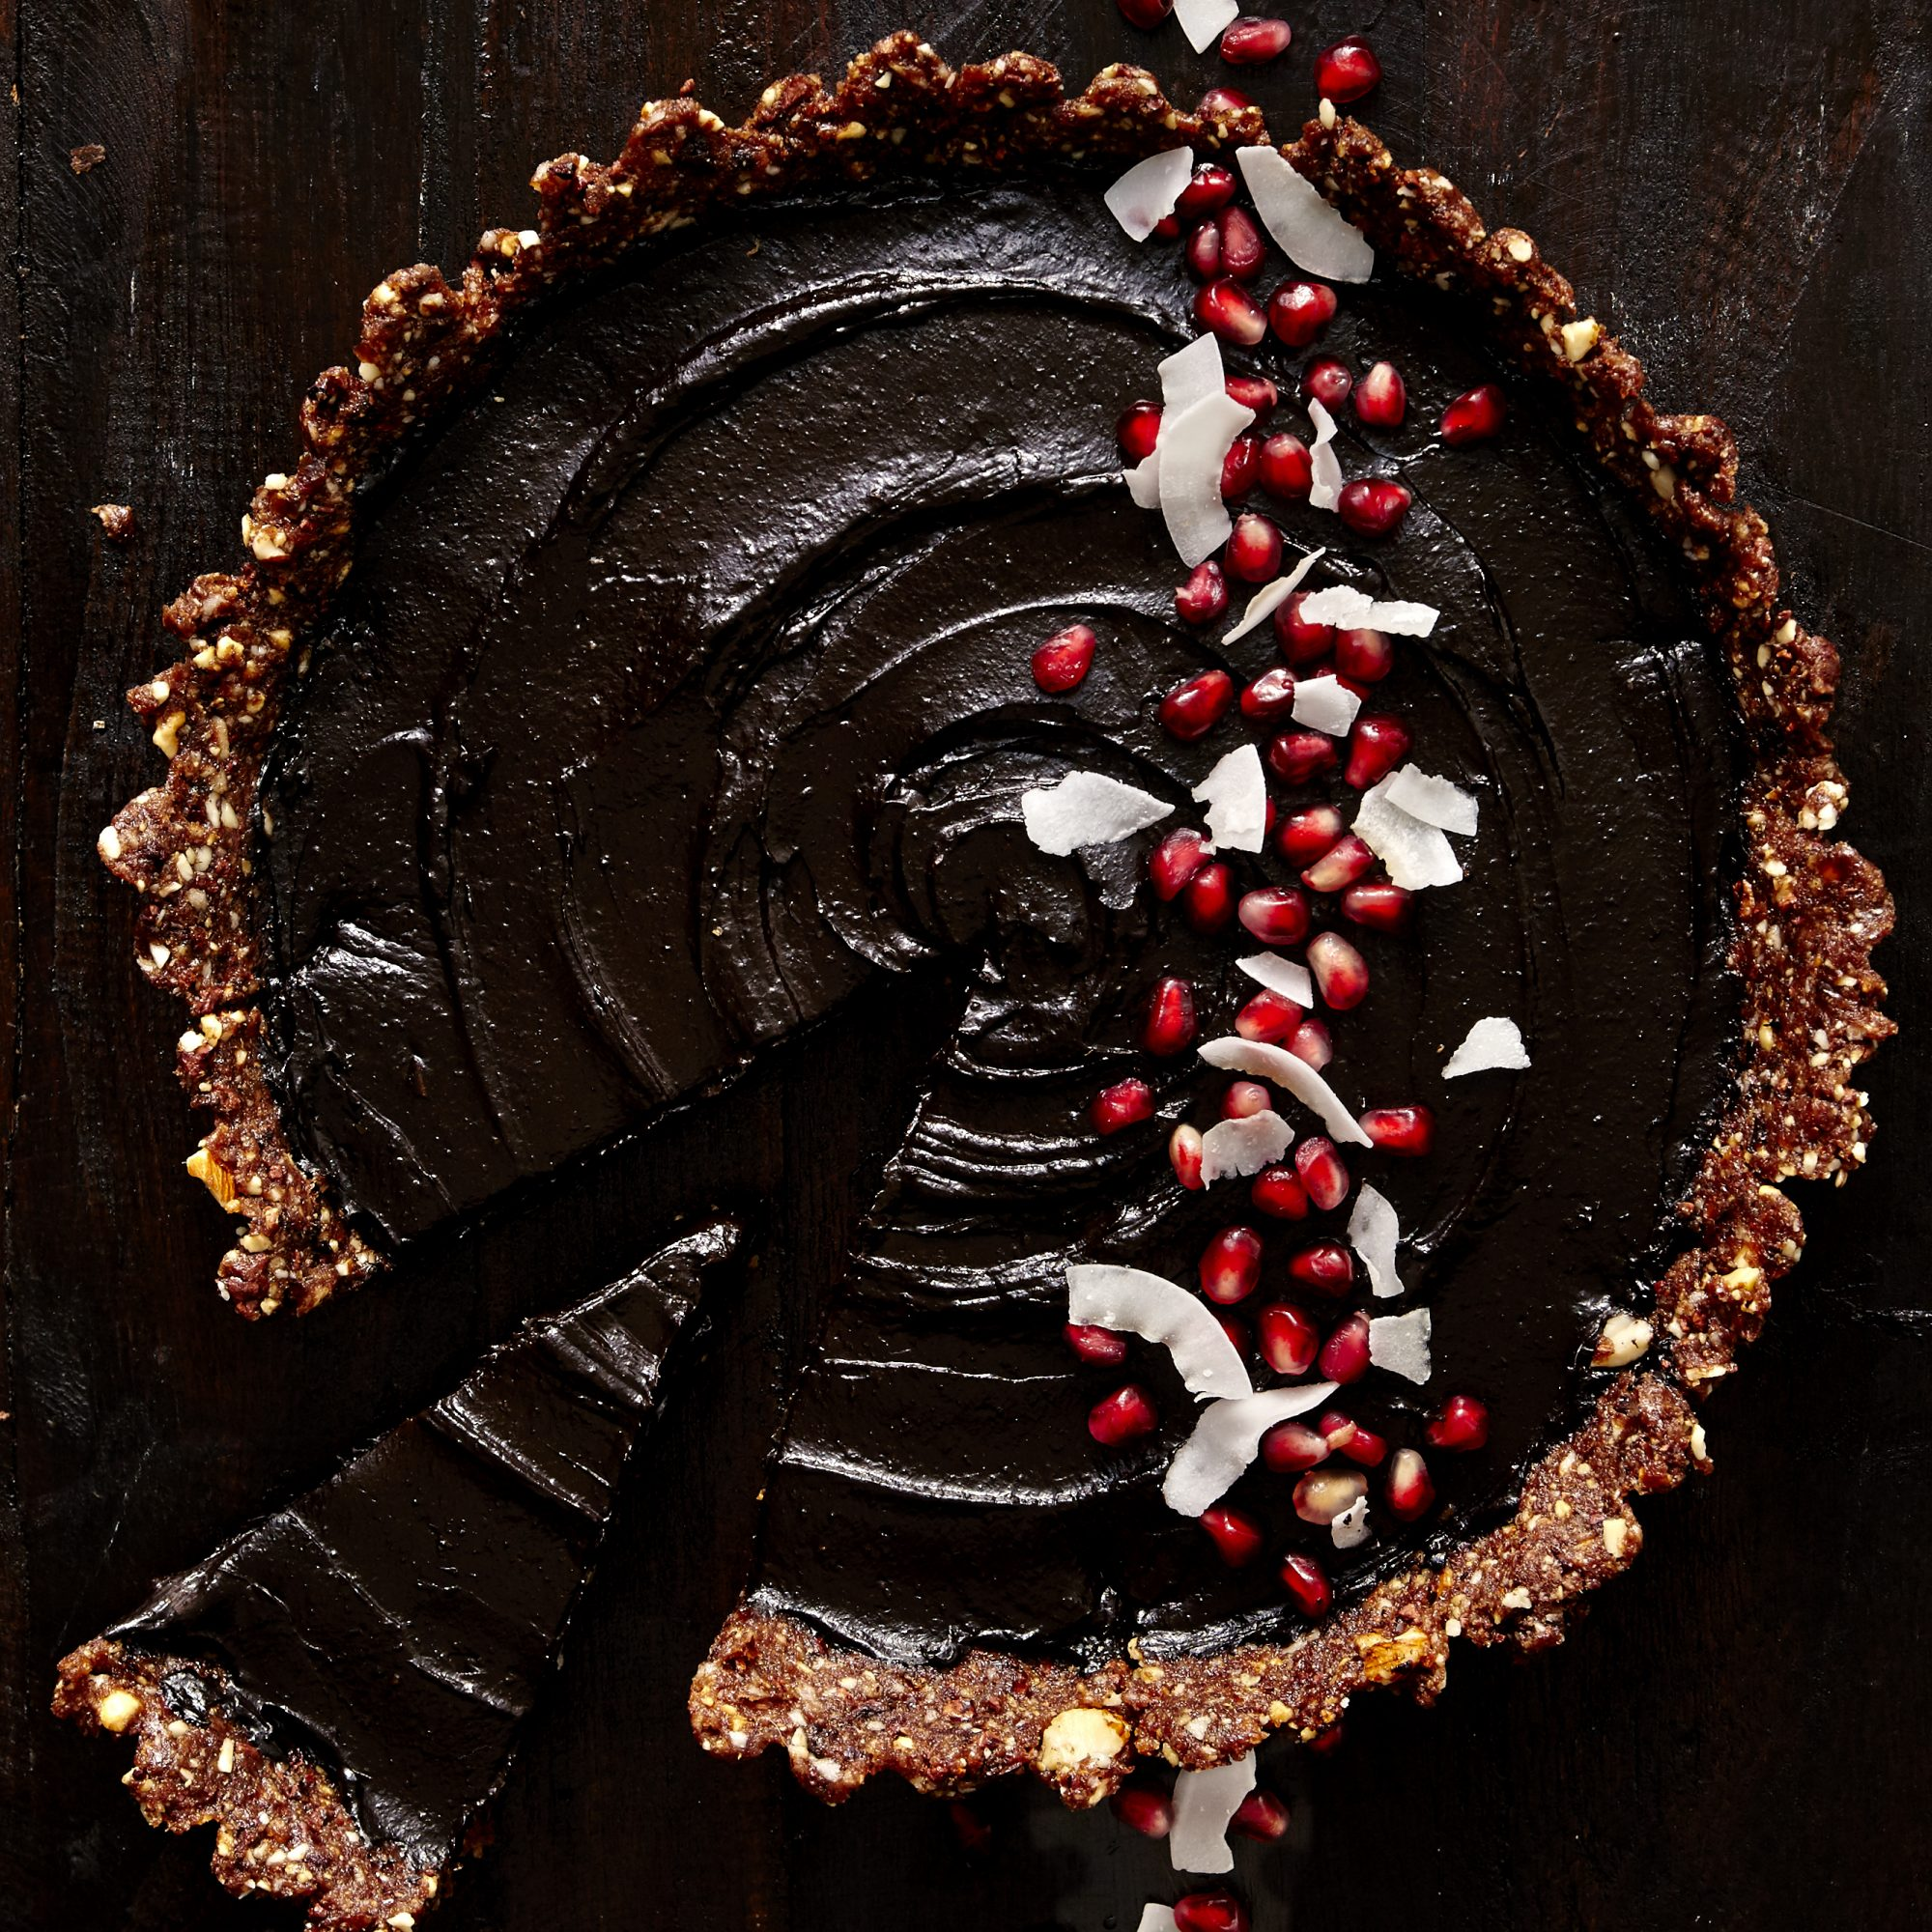 mr-vegan-dark-chocolate-coconut-tart-image